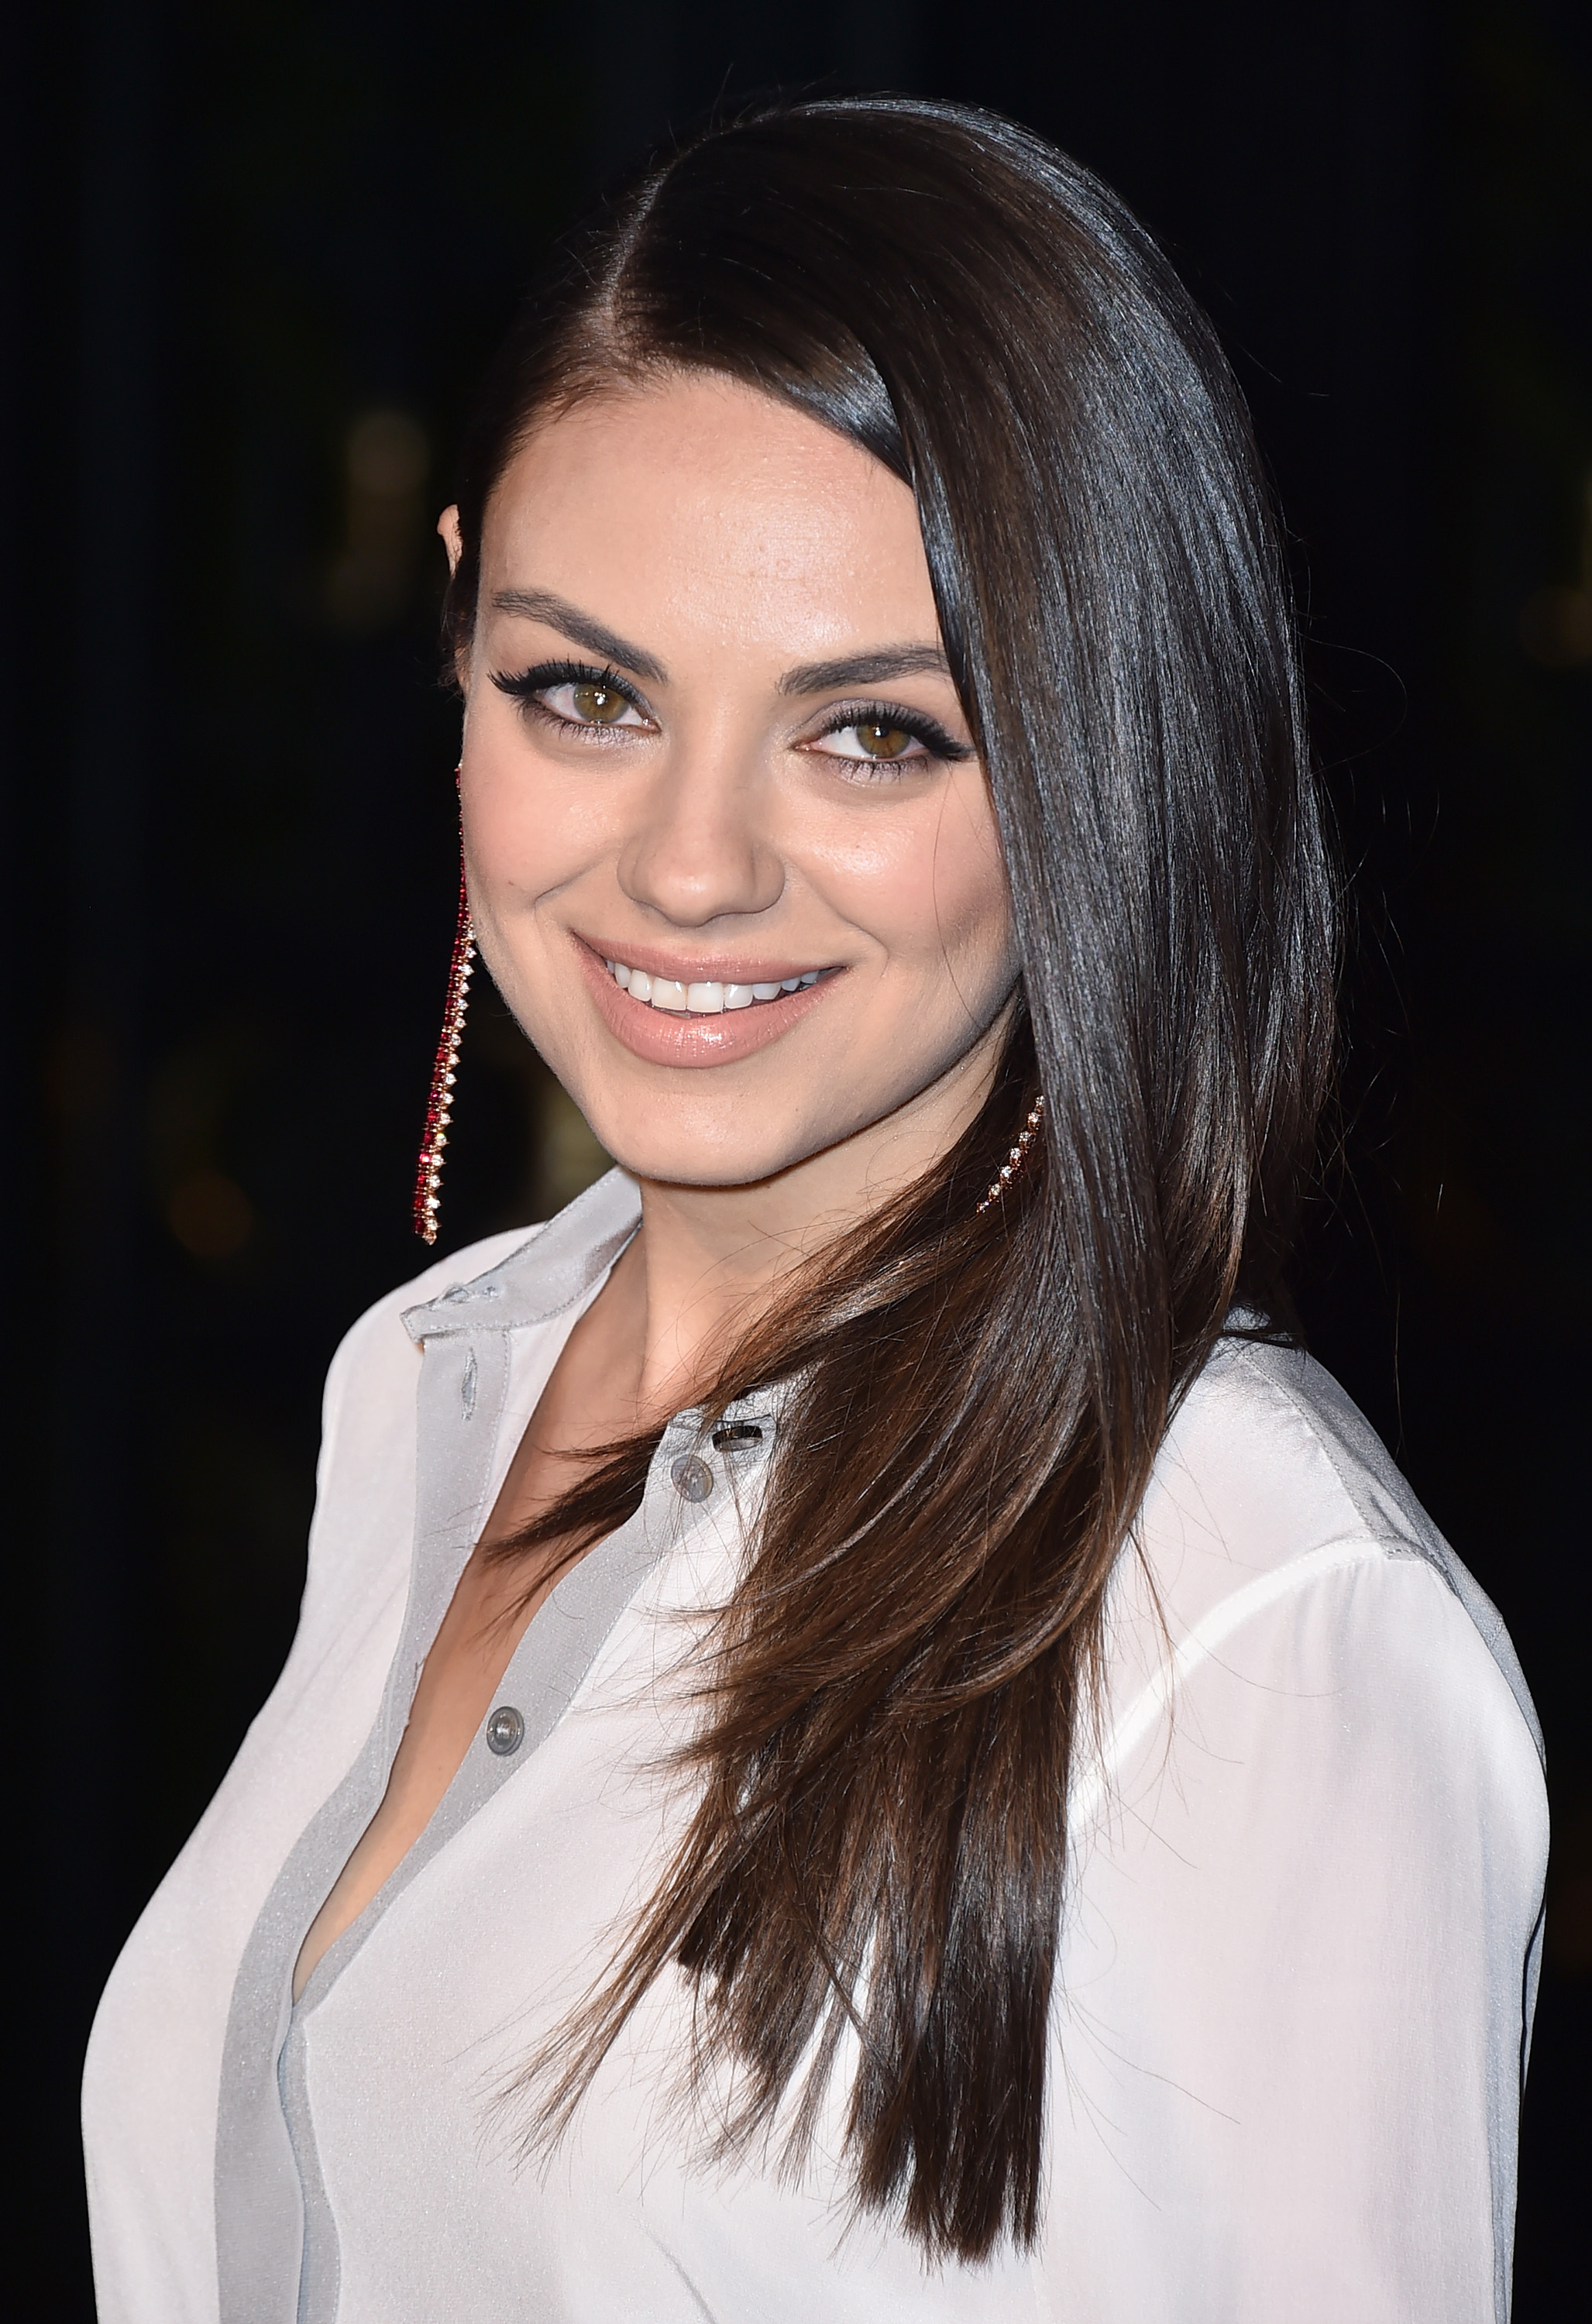 Mila Kunis attends Burberry's  London in Los Angeles  event on April 16, 2015.